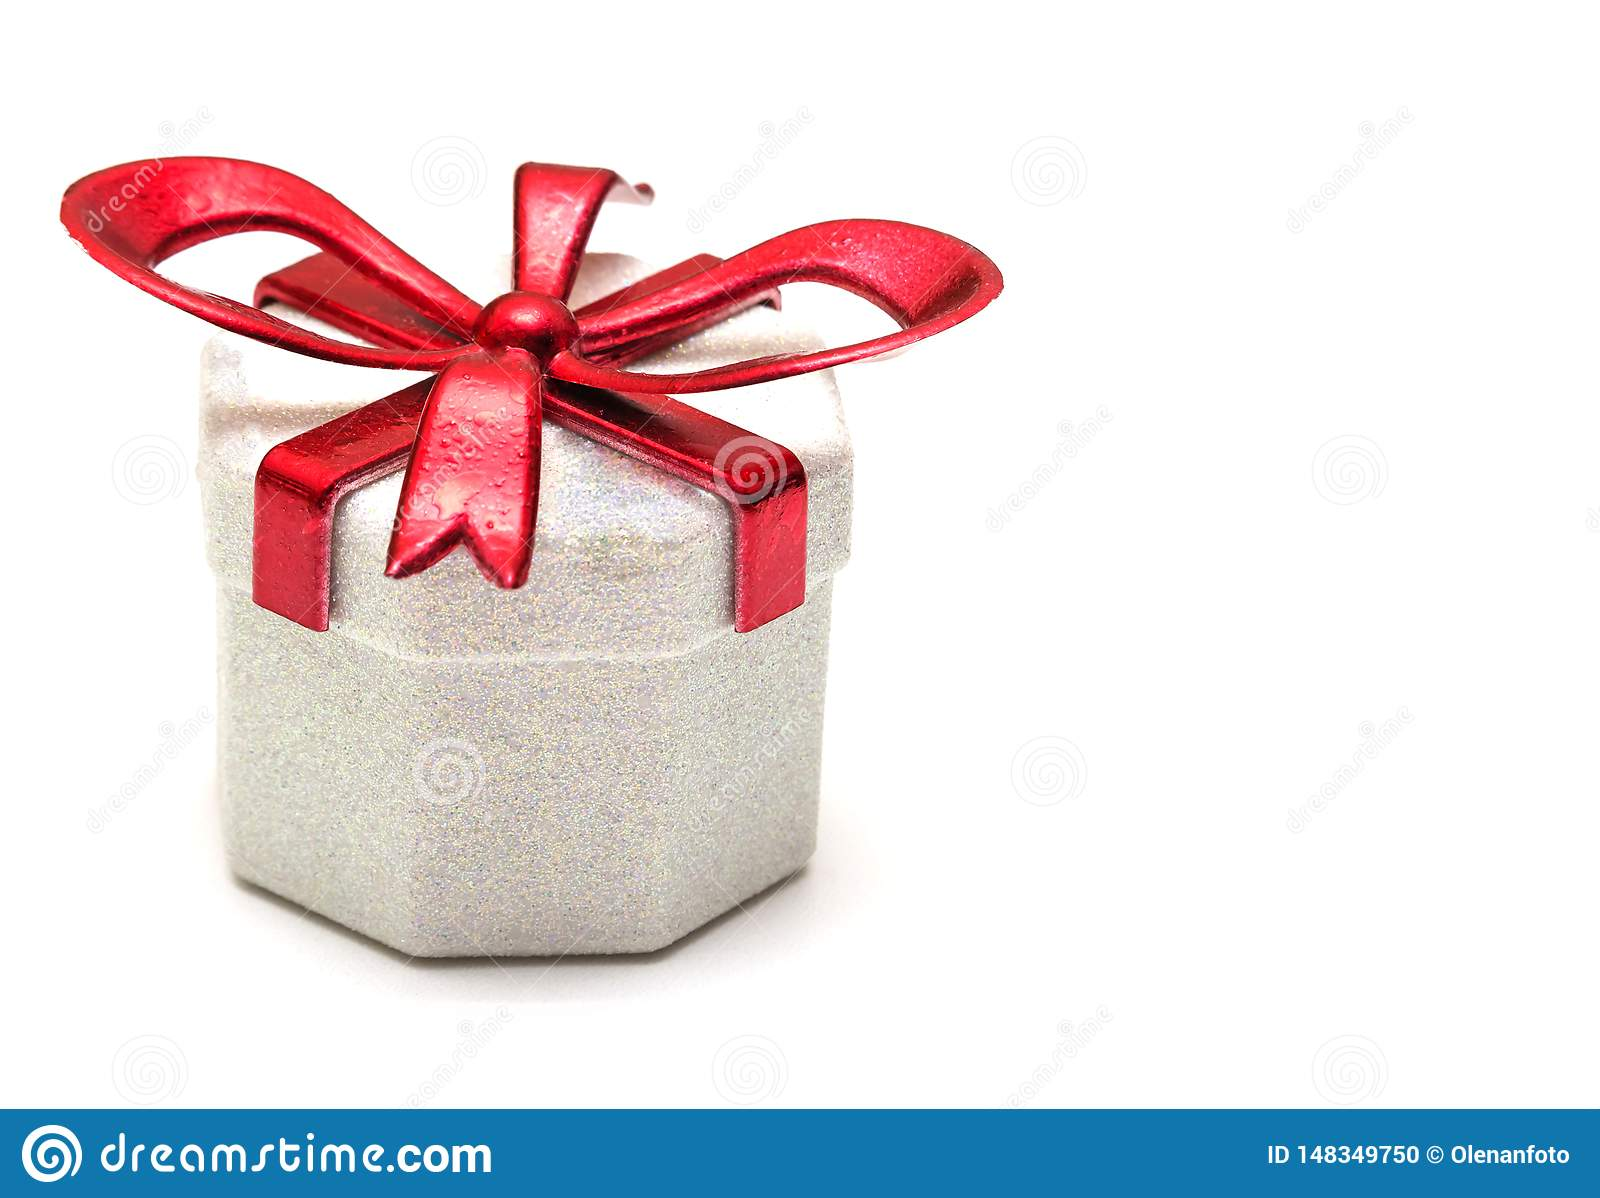 Gift box with a red ribbon on a white background